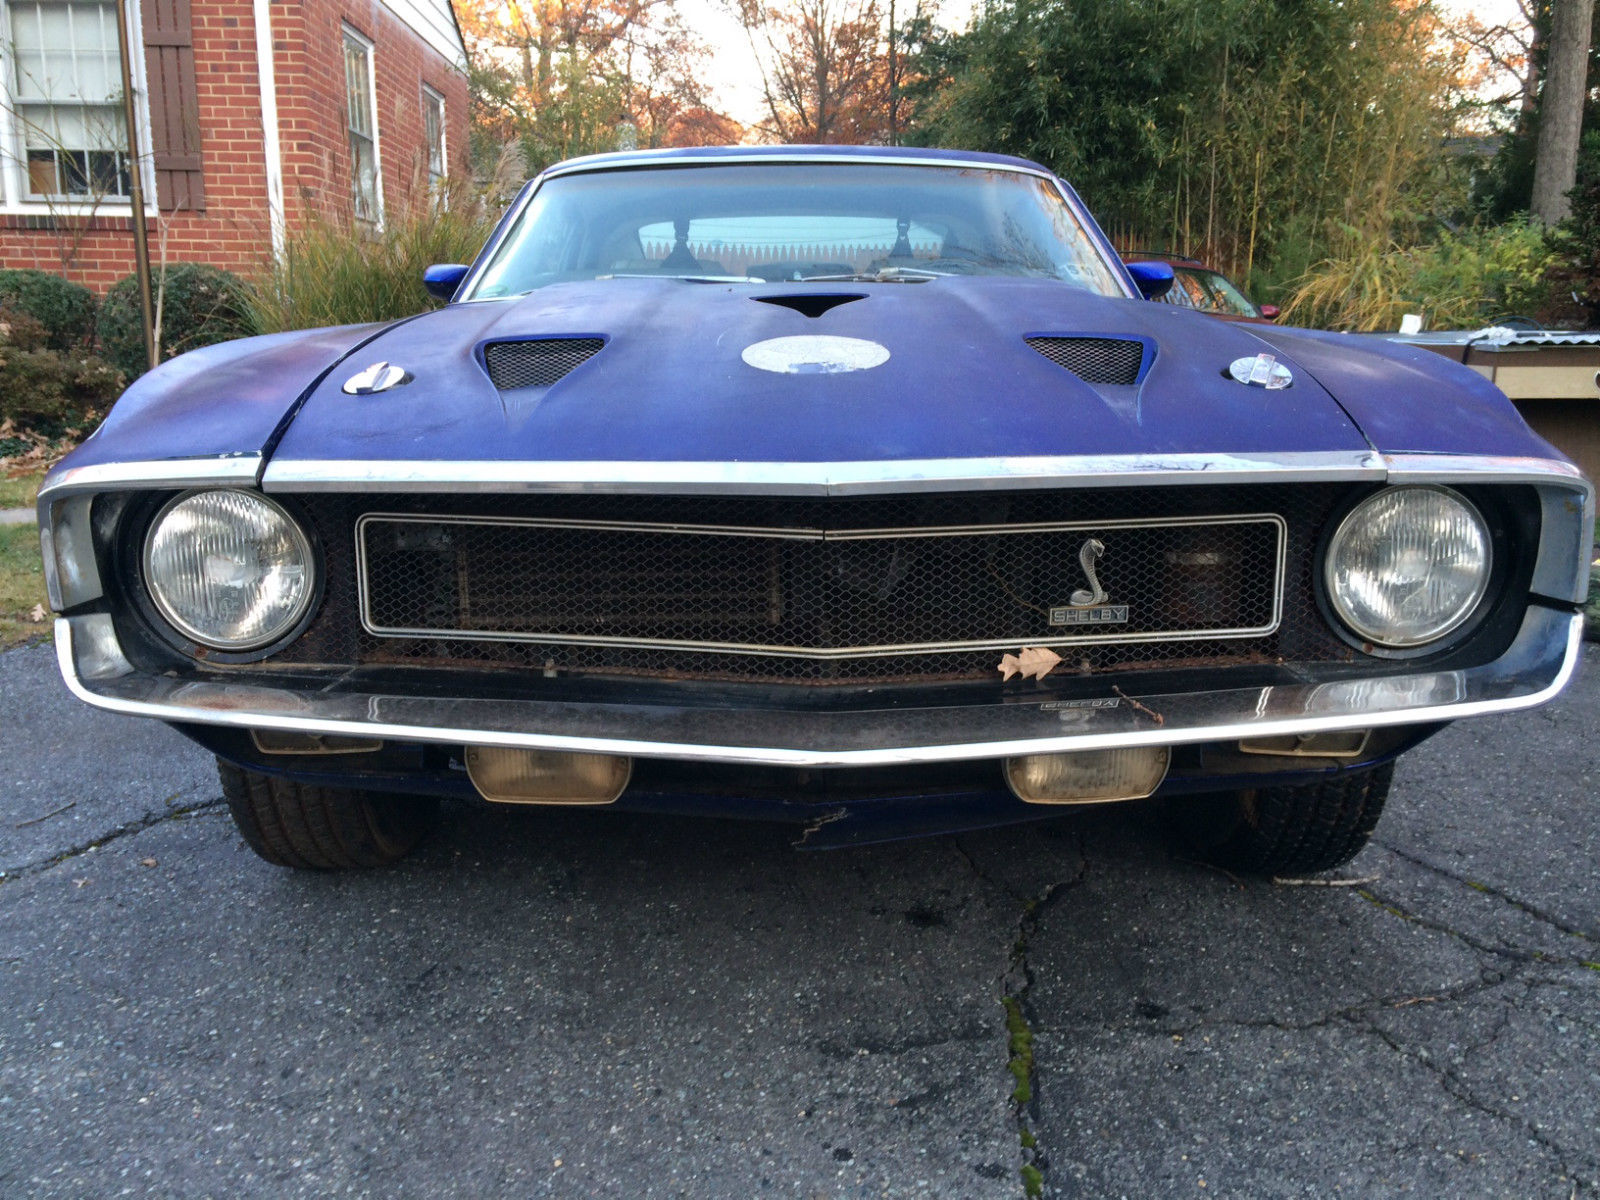 1969 Shelby Mustang Gt 350 Hertz 351 W Solid Body Southern Car Ford